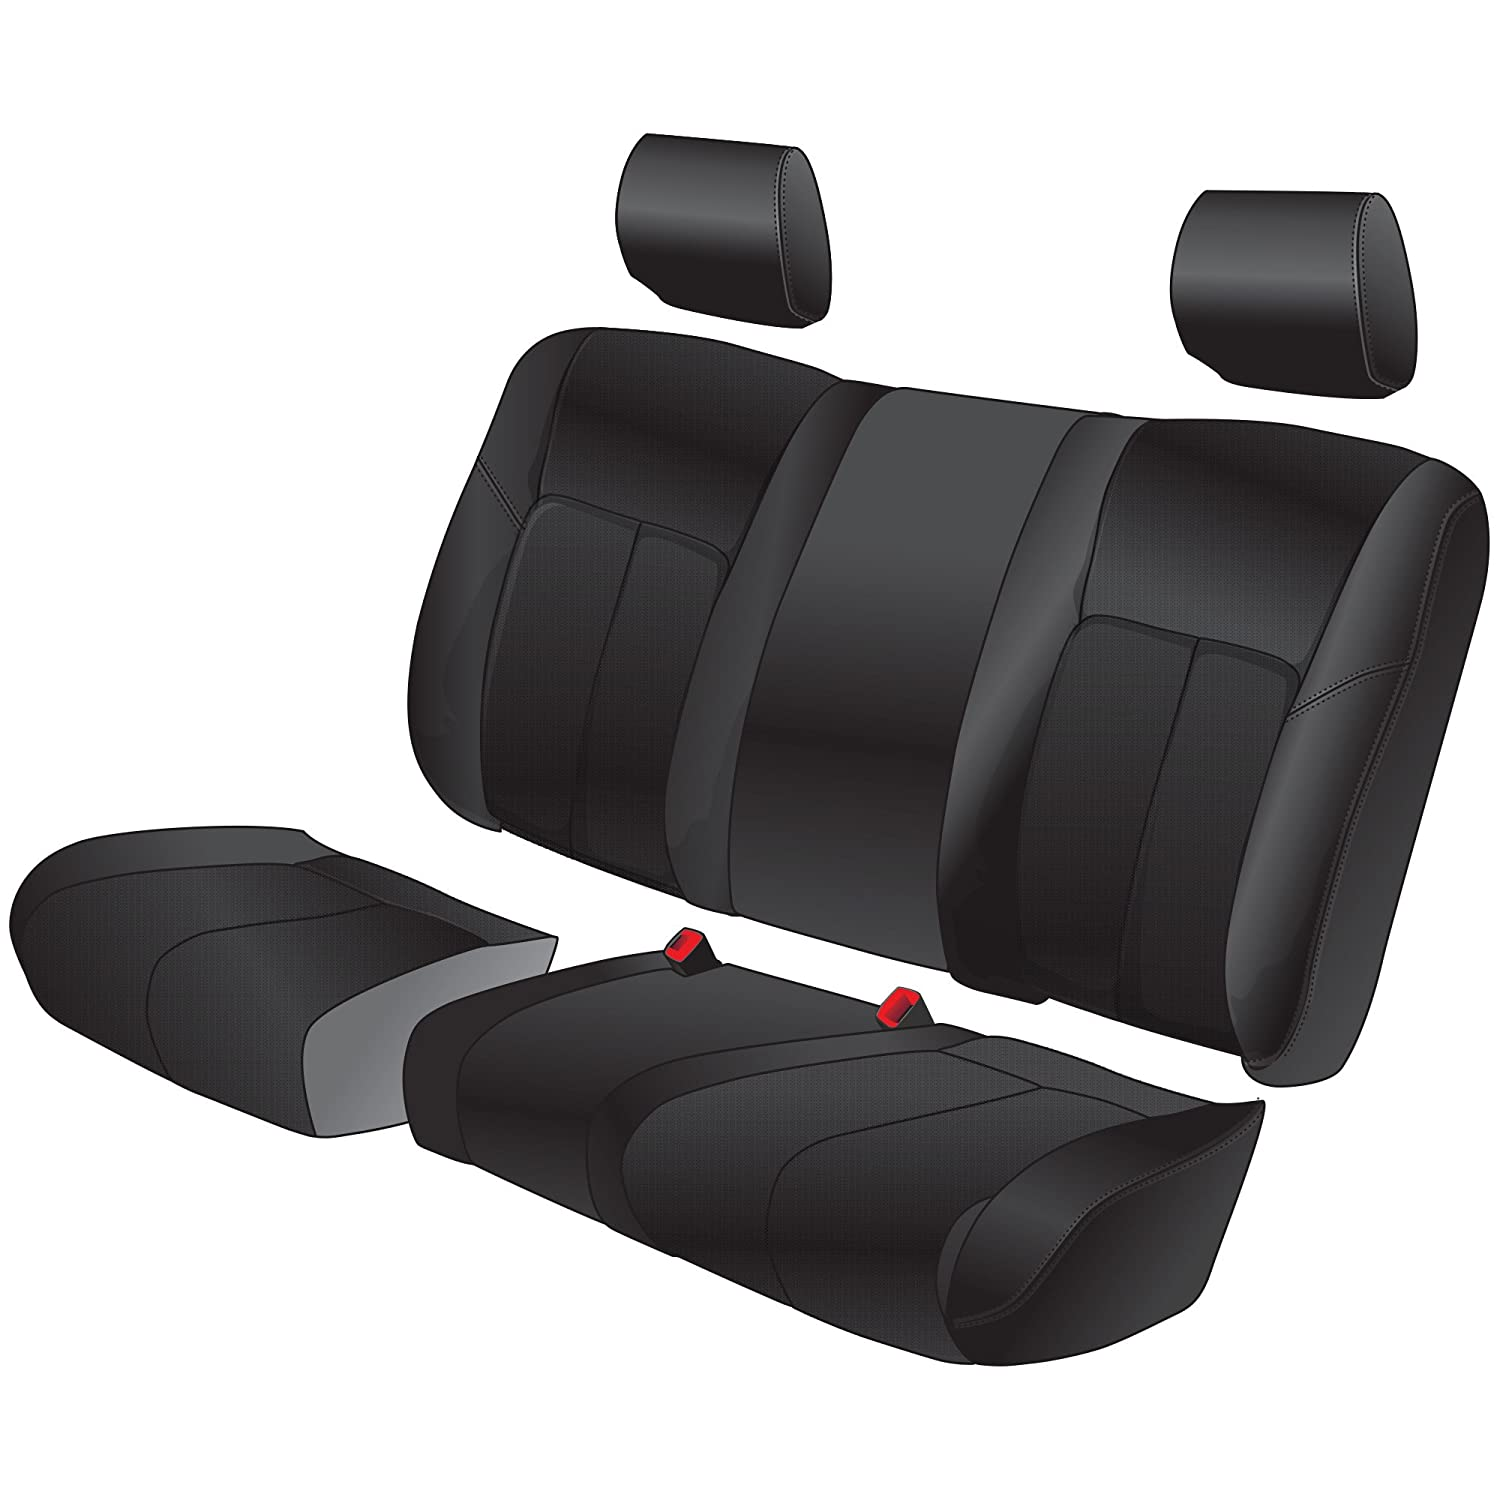 Clazzio 719411blk Black Leather Front Row Seat Cover for Ford F150 Super Crew